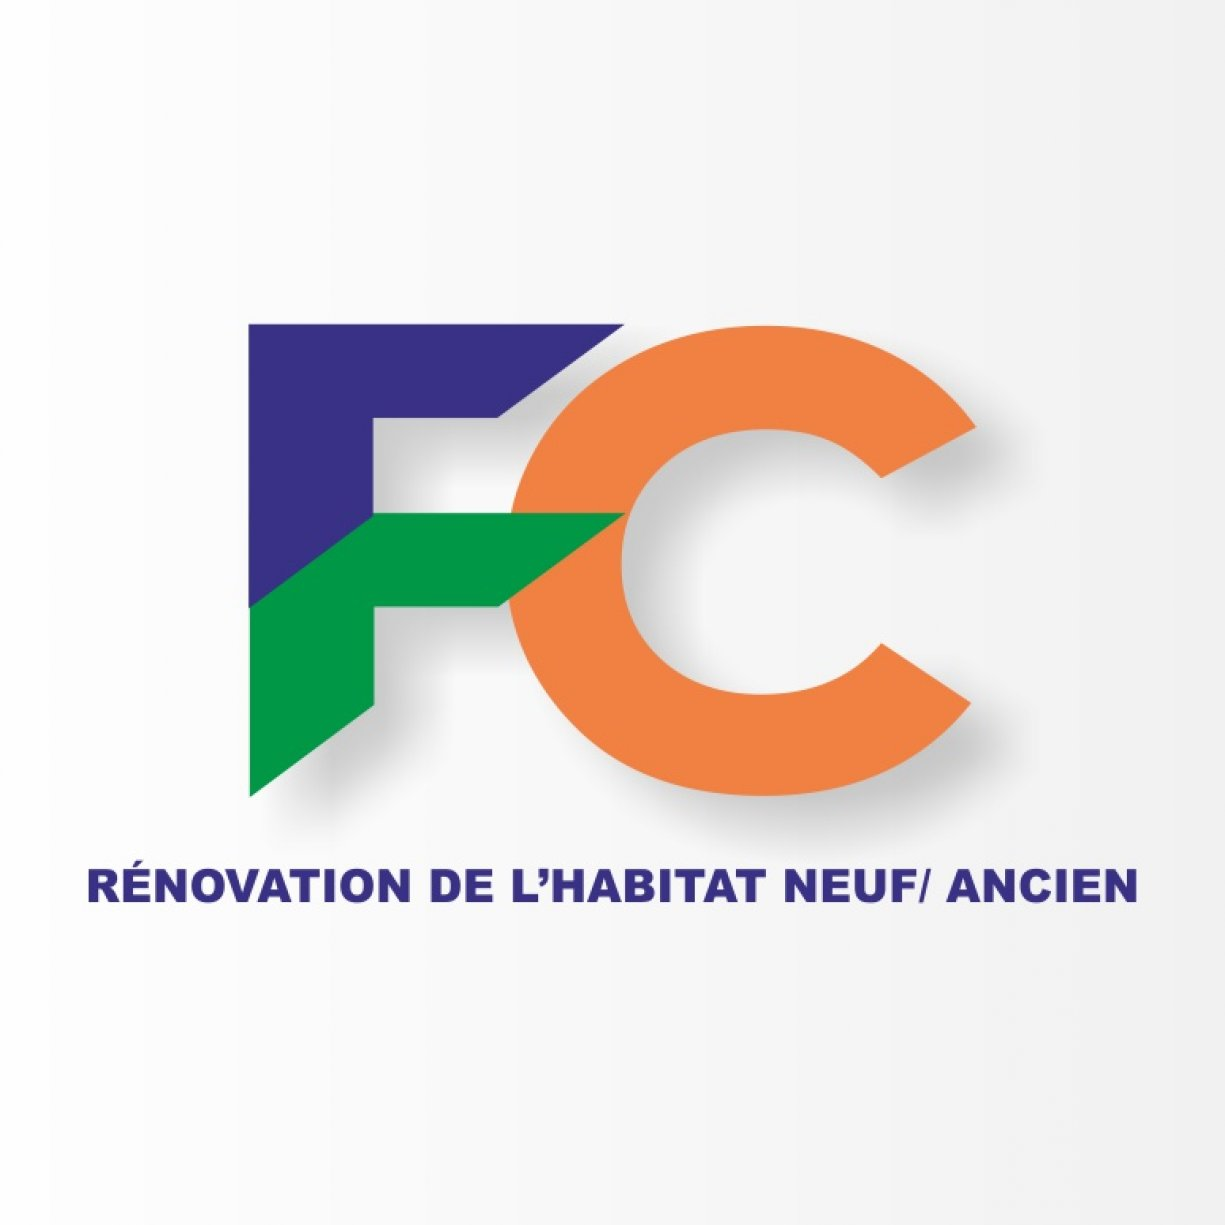 FC Rénovation Travaux de rénovation de l'habitat